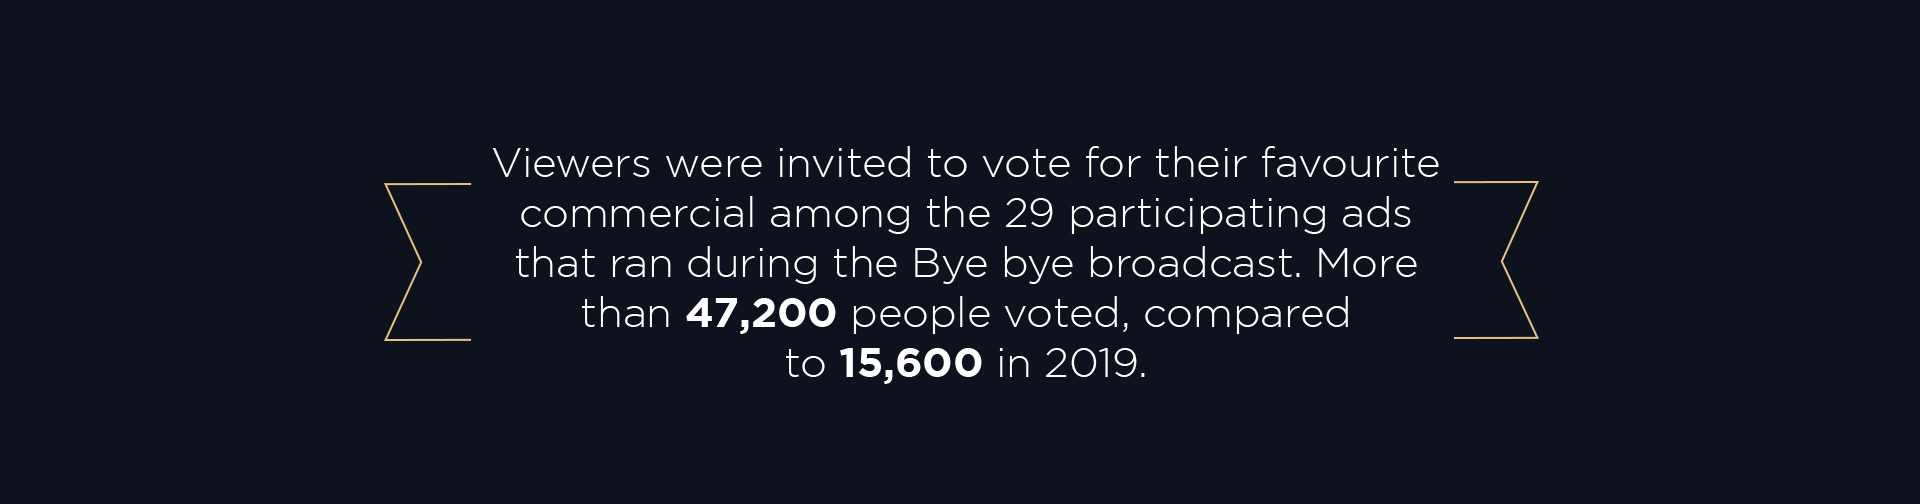 Viewers were invited to vote for their favourite commercial among the 29 participating ads that ran during the Bye bye broadcast. More than 47,200 people voted, compared to 15,600 in 2019.